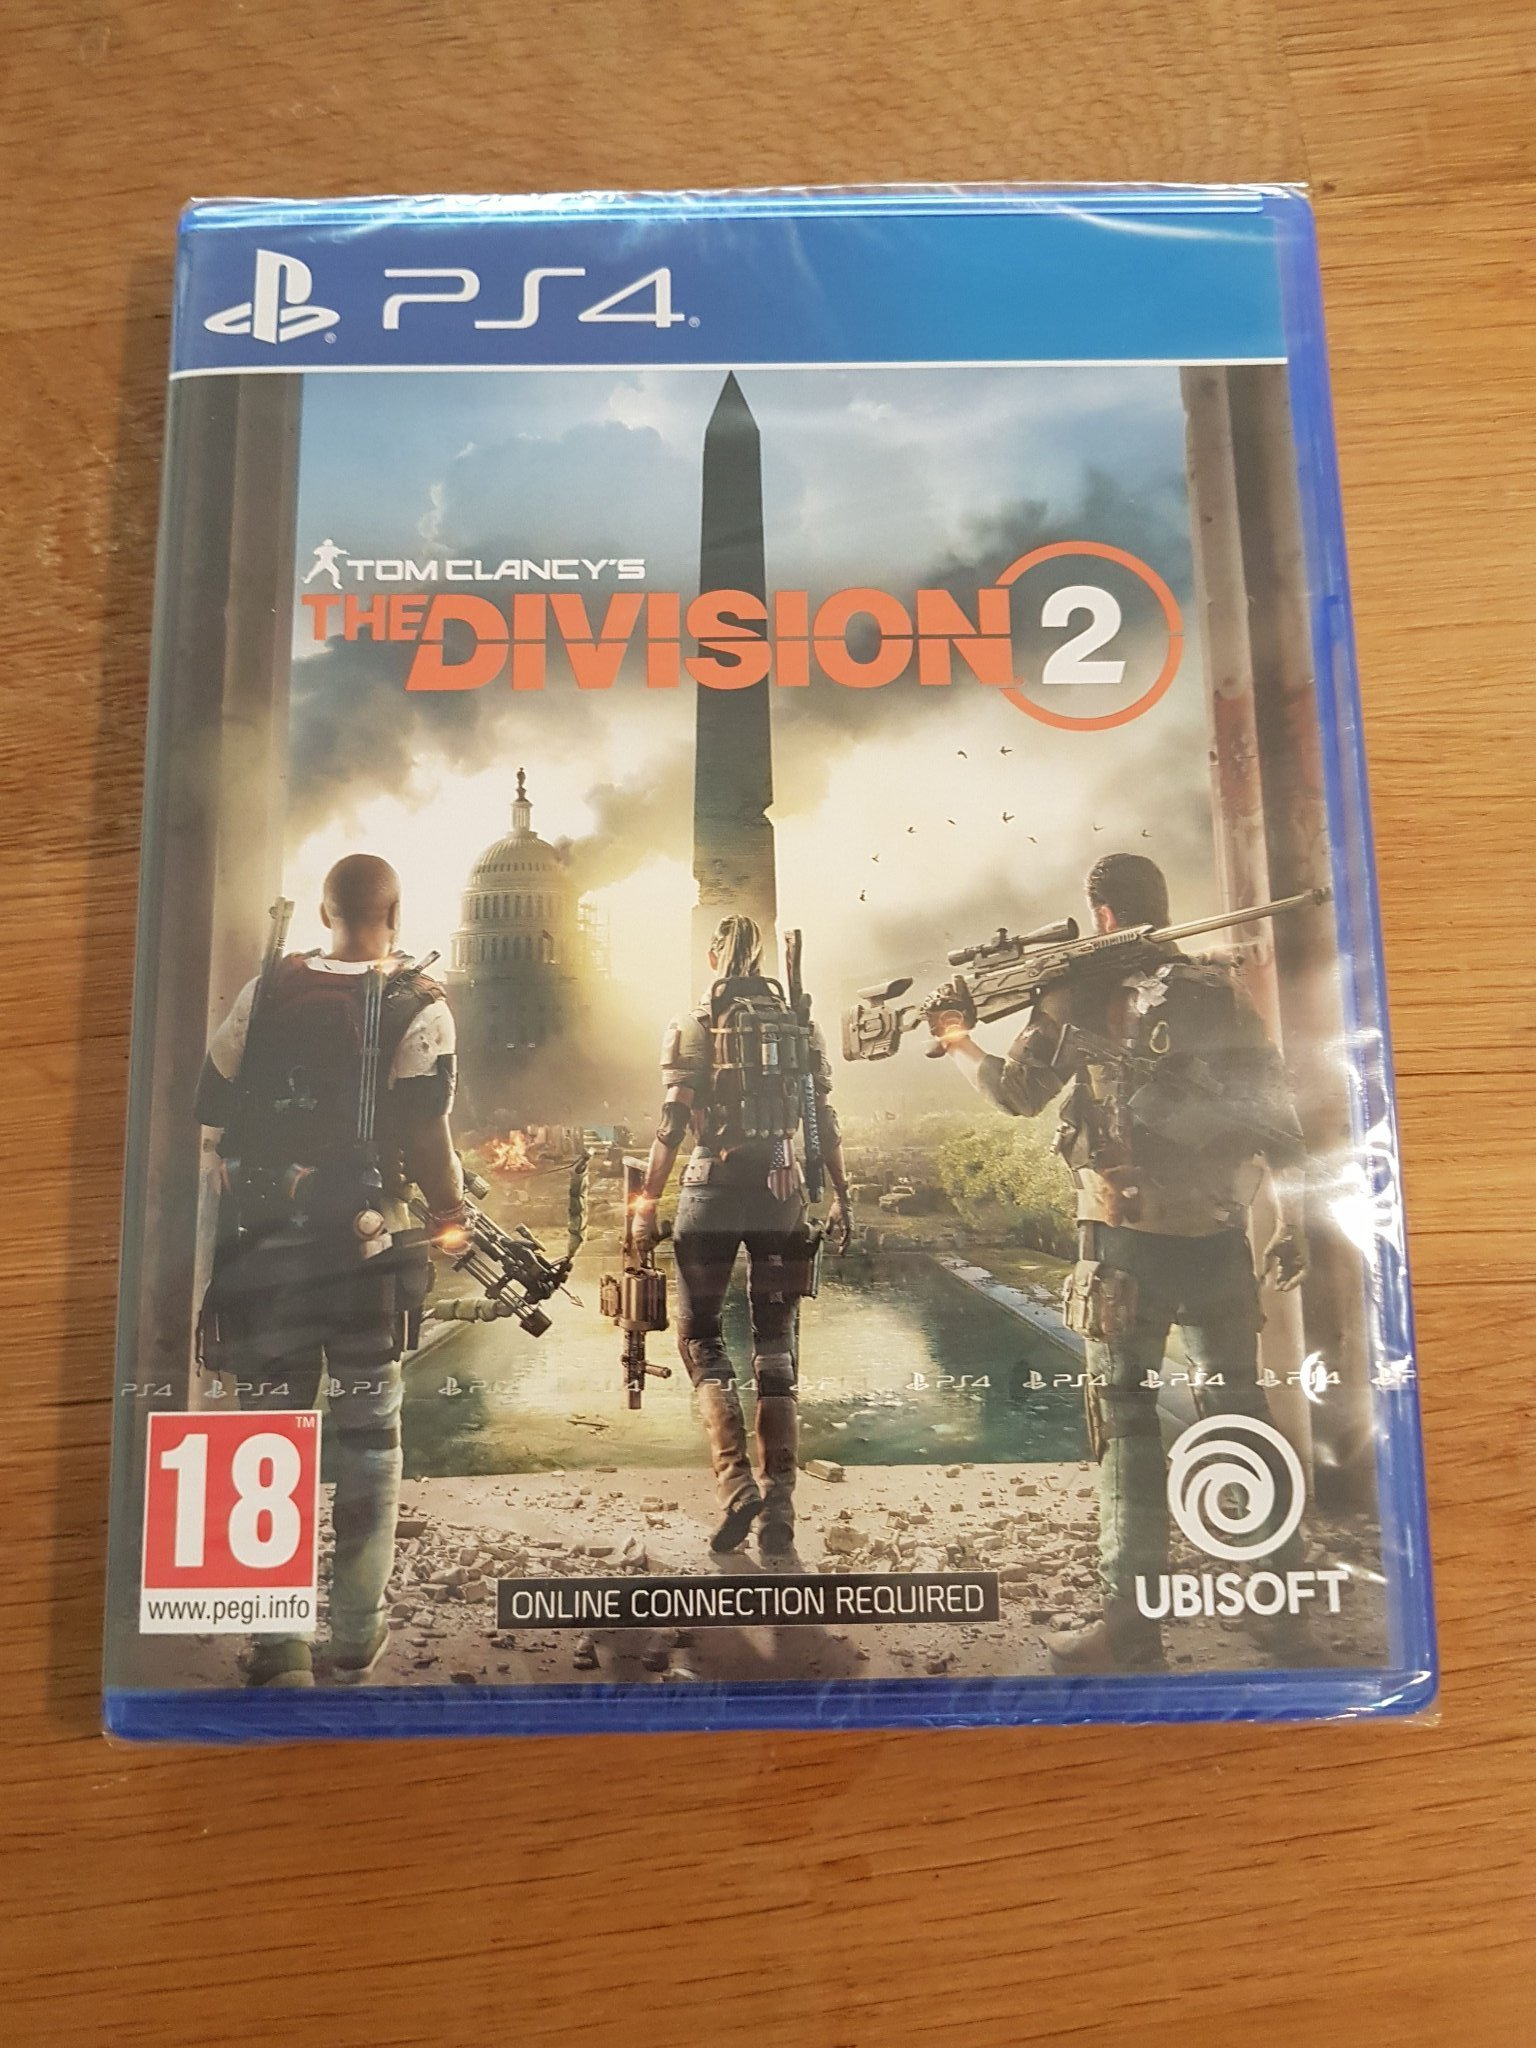 PS4: The Divison 2. Nytt